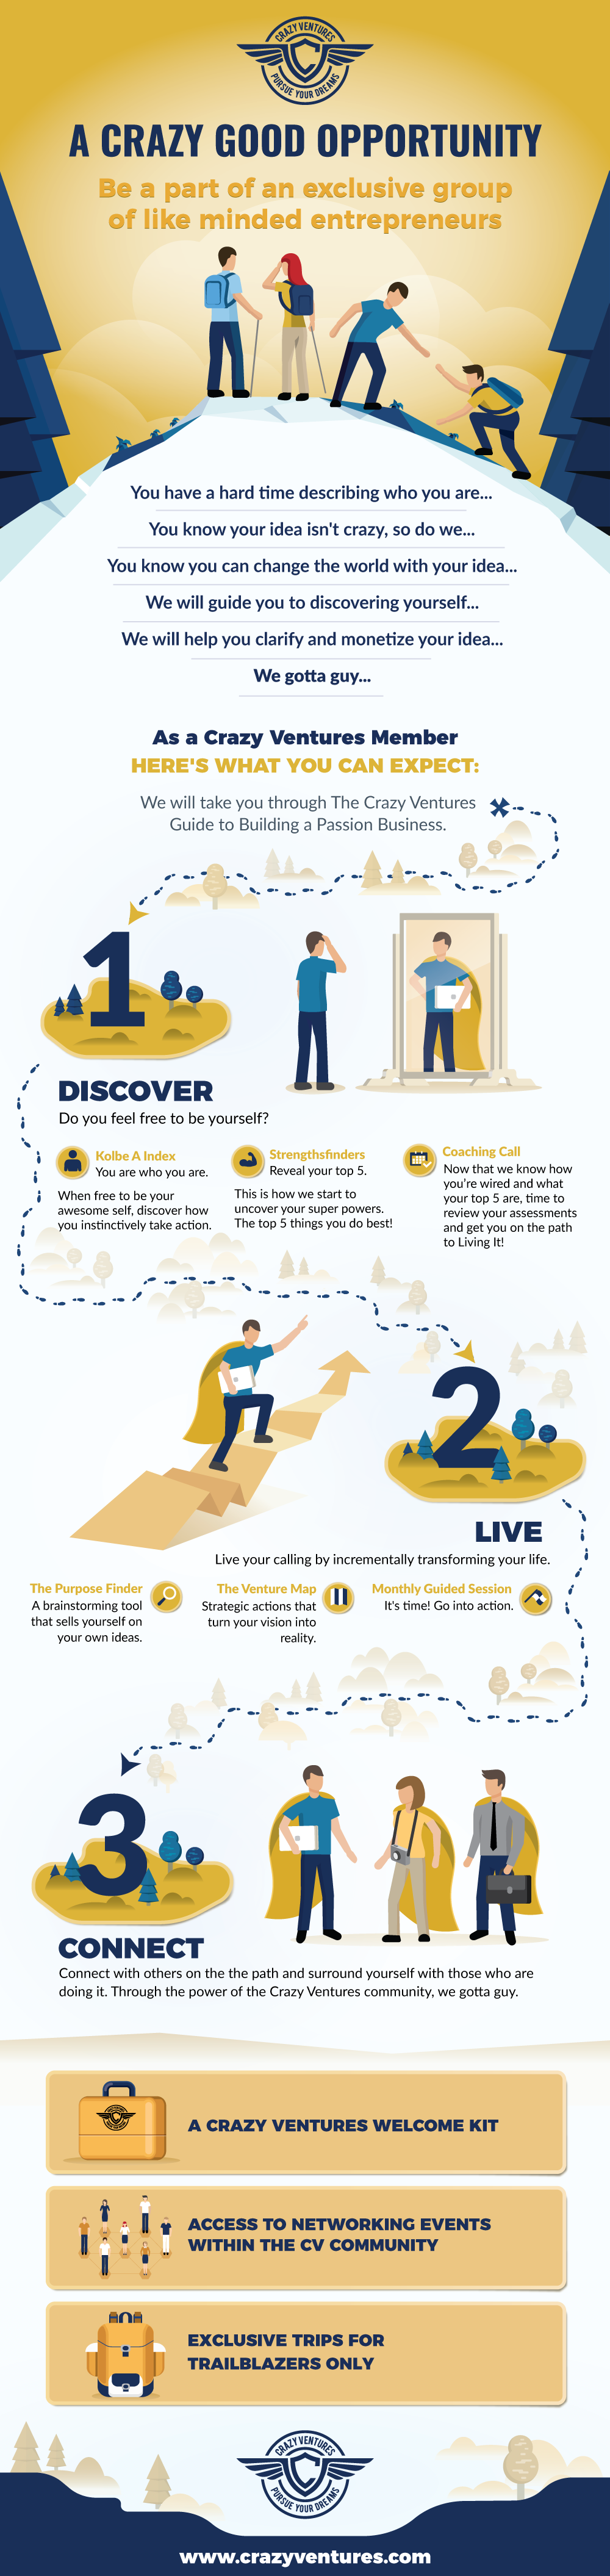 The Crazy Ventures Guide to Building Your Passion Business